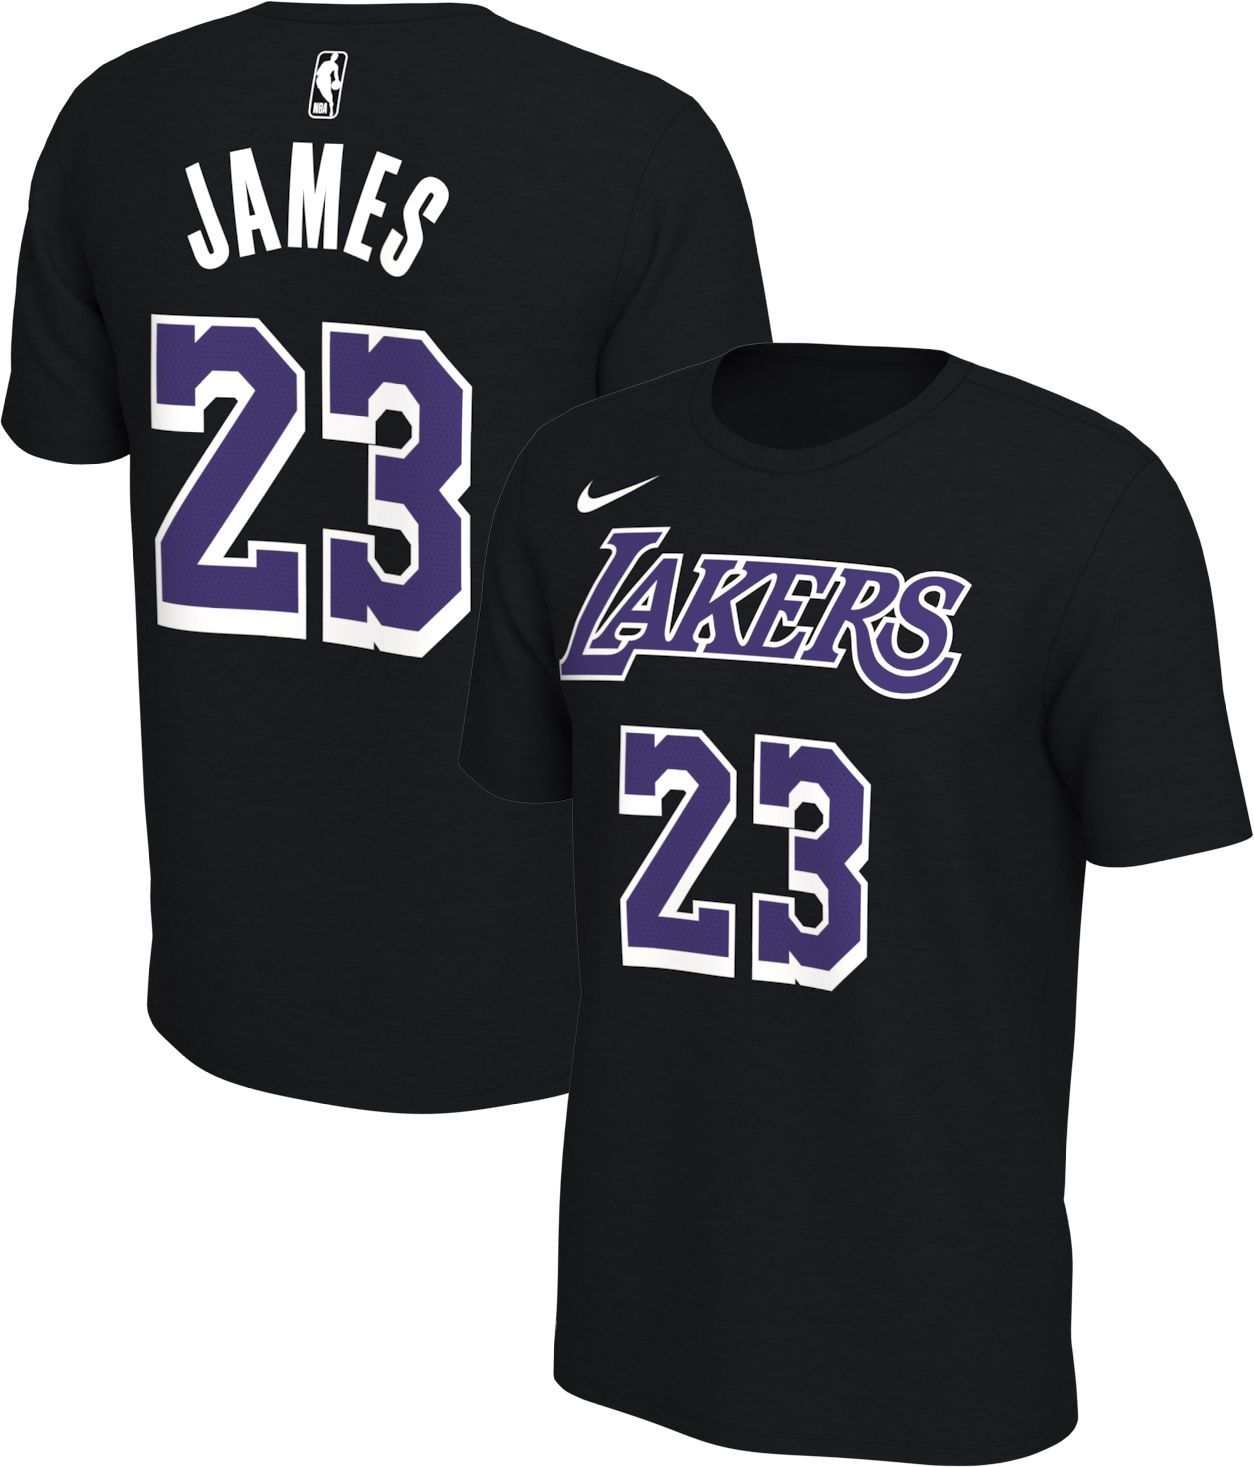 6a53c6b39 Nike Men s Los Angeles Lakers LeBron James  23 Dri-FIT Black T-Shirt ...